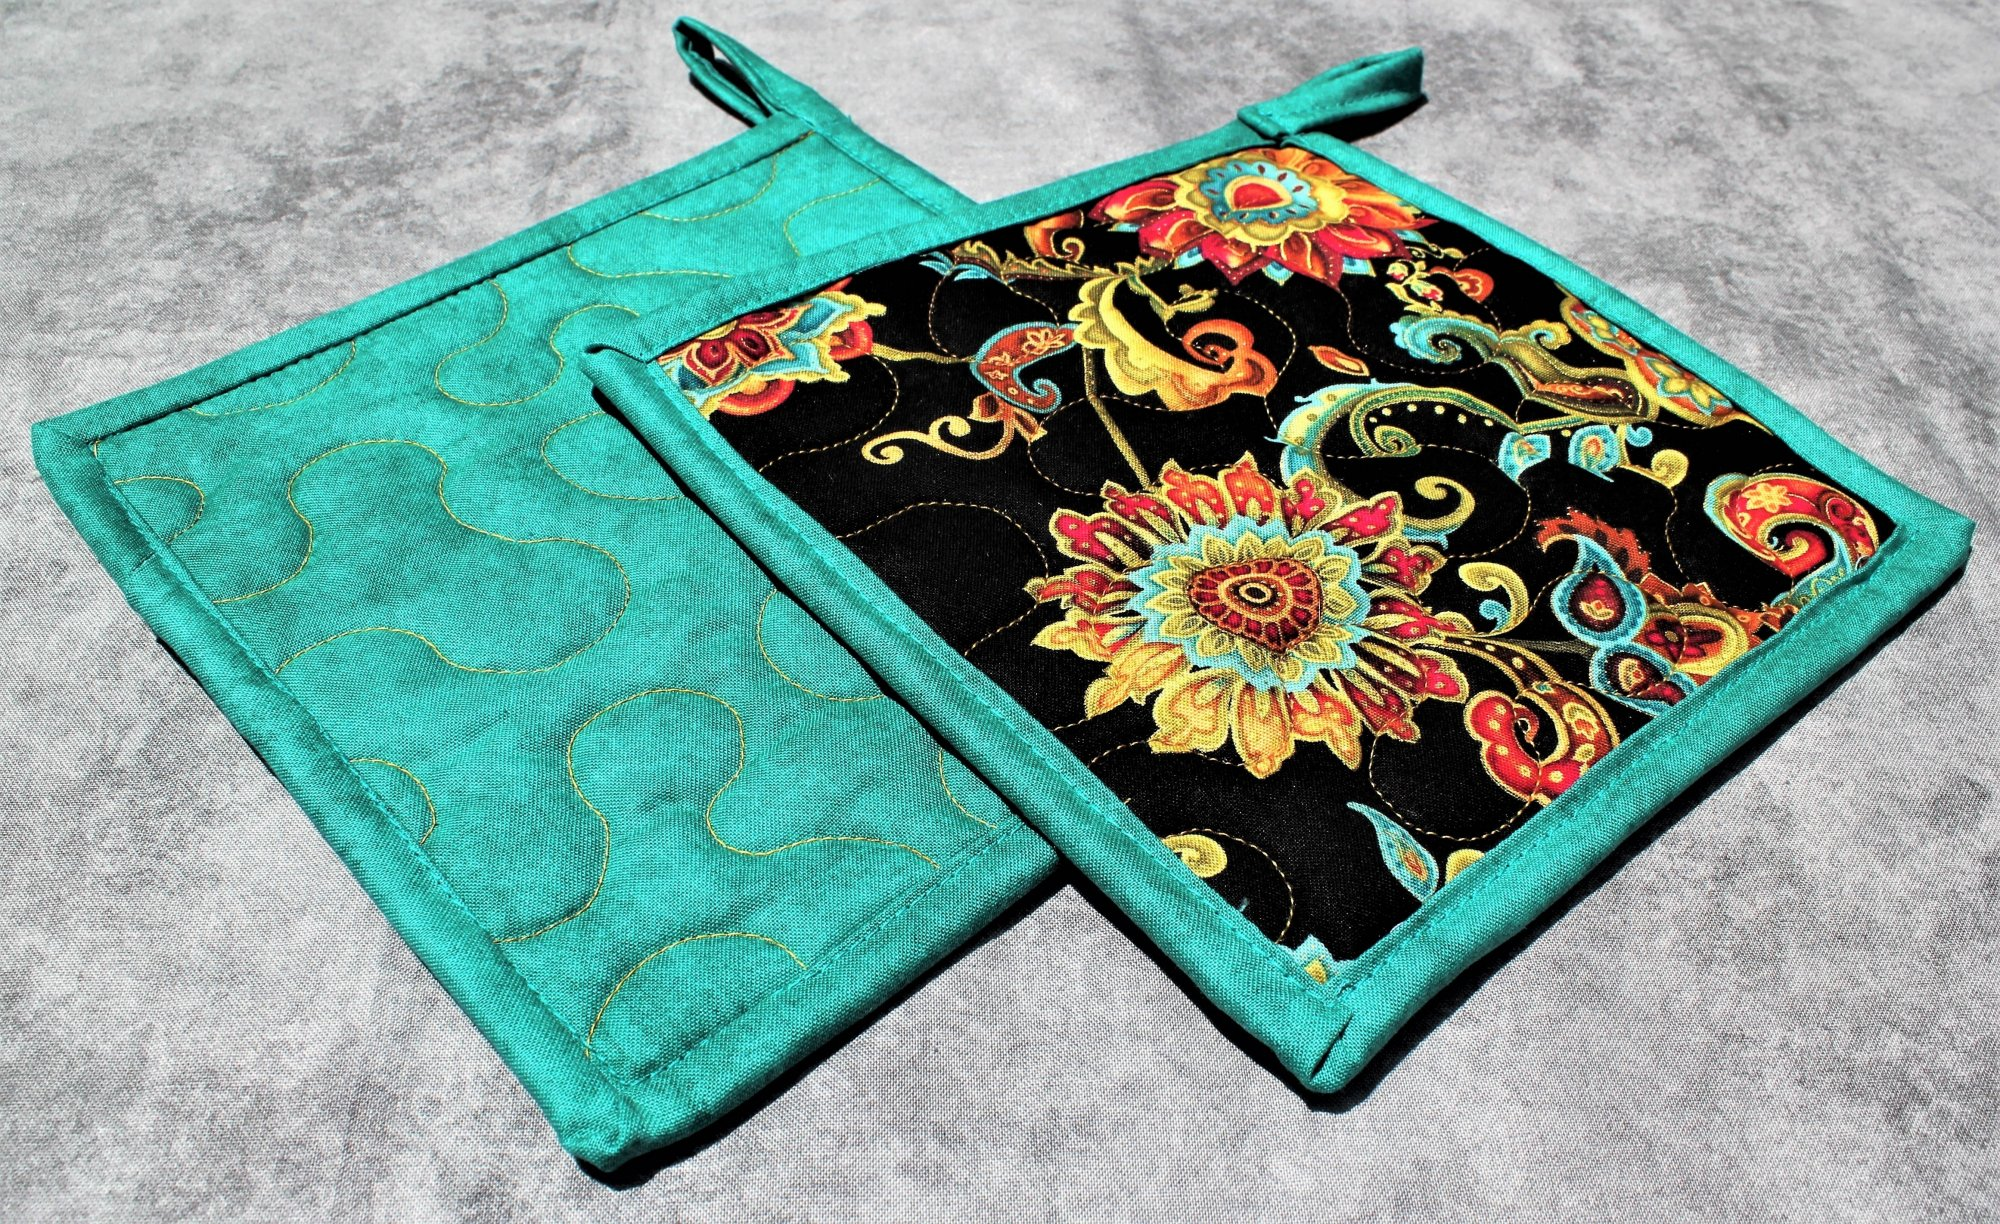 Red/Green/Teal Swirling Paisleys and Flowers Potholders Set of 2